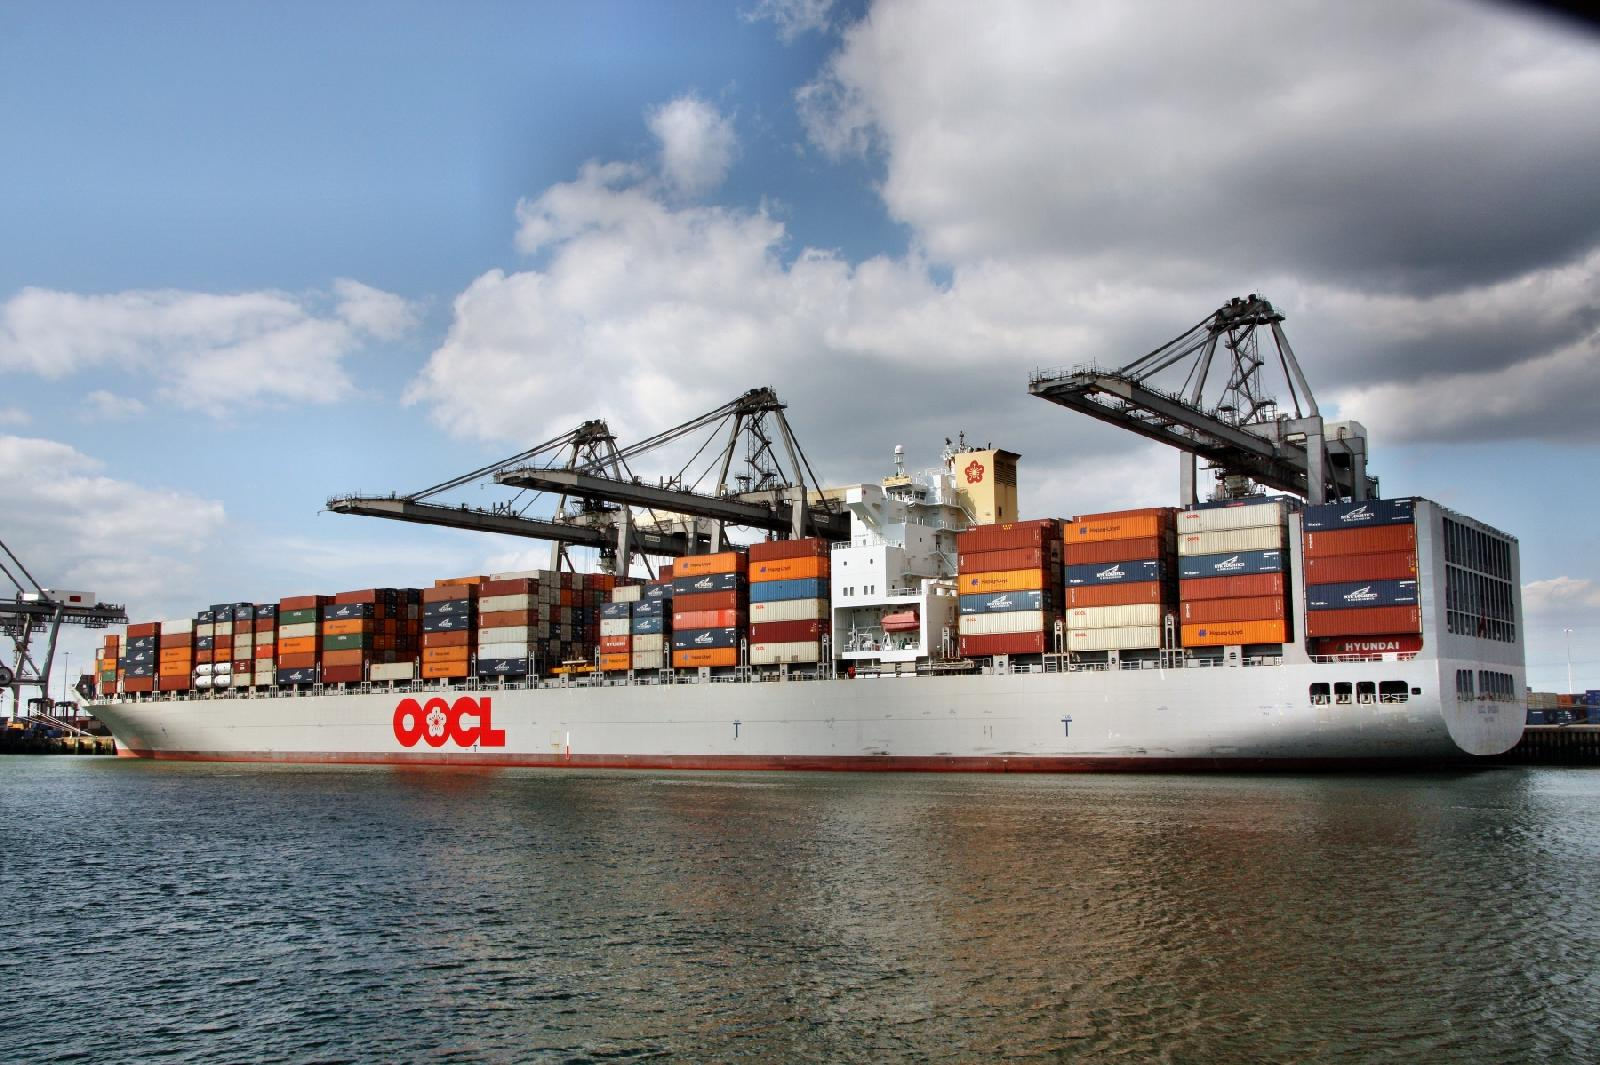 Global Ship Lease buys 8,063-TEUer from OOCL then charters it back